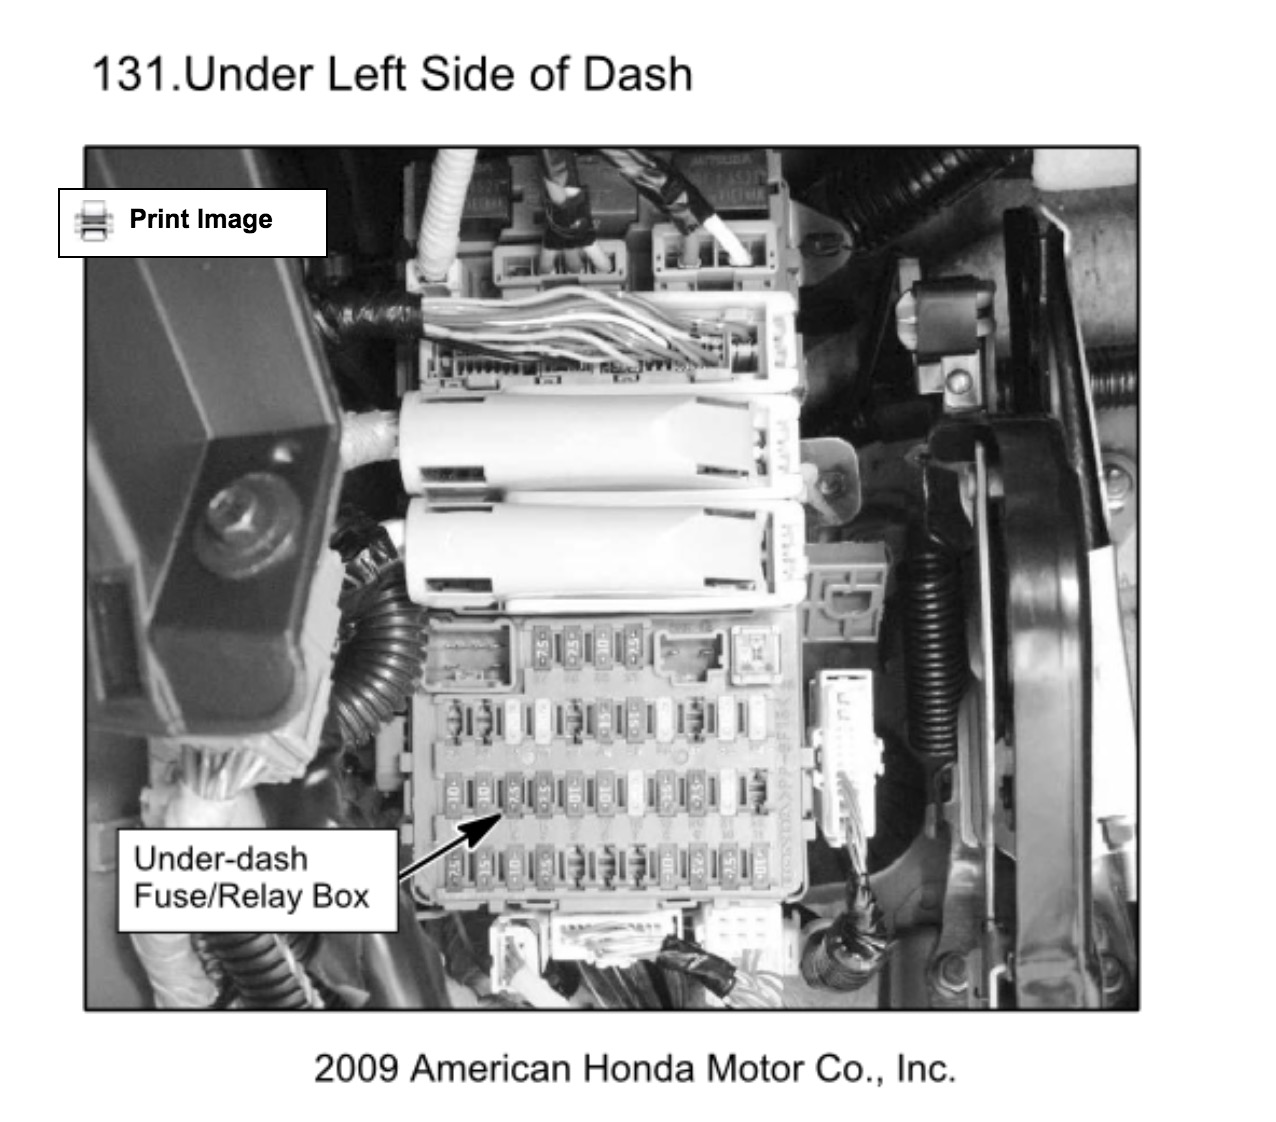 I Have Issues With Power Door Locks On 2007 Honda Cr V Ex L The Open Fuse Box Crv 2d9a126a 779d 4d48 Aa6d 2d9a126